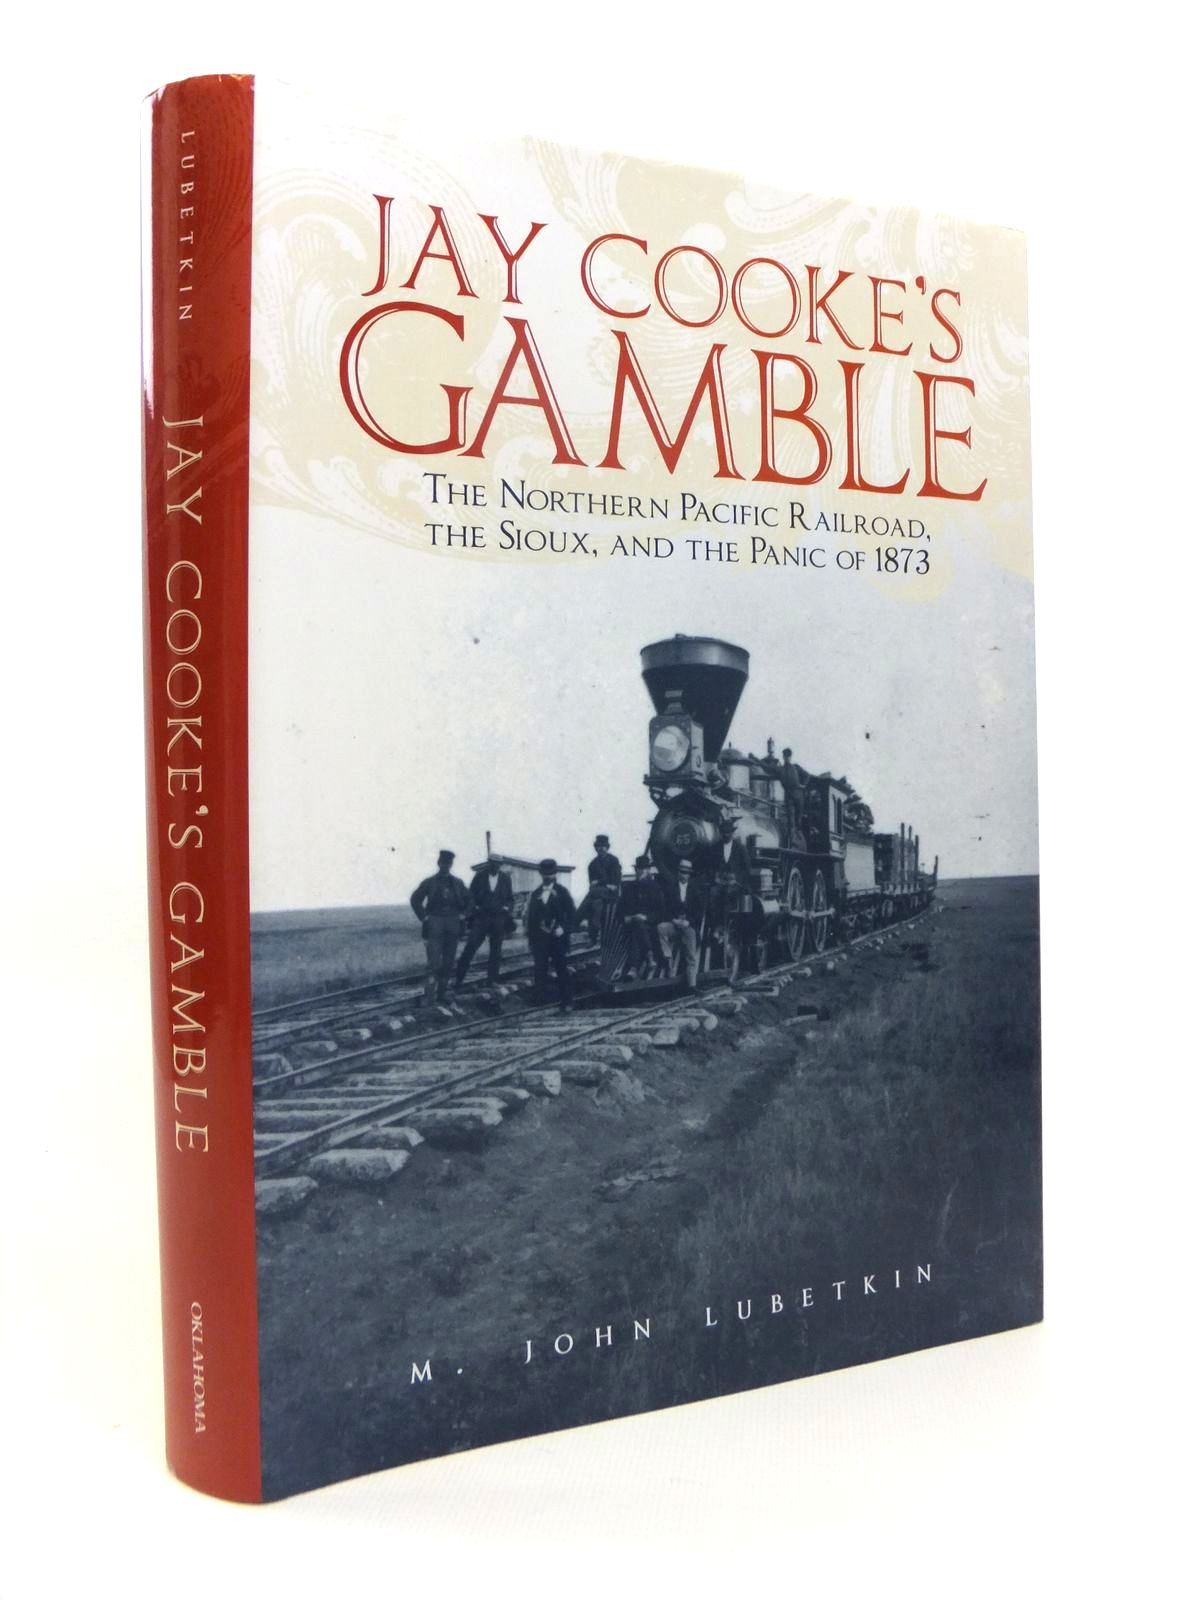 Photo of JAY COOKE'S GAMBLE: THE NORTHERN PACIFIC RAILROAD, THE SIOUX, AND THE PANIC OF 1873 written by Lubetkin, M. John published by University of Oklahoma Press (STOCK CODE: 1812296)  for sale by Stella & Rose's Books